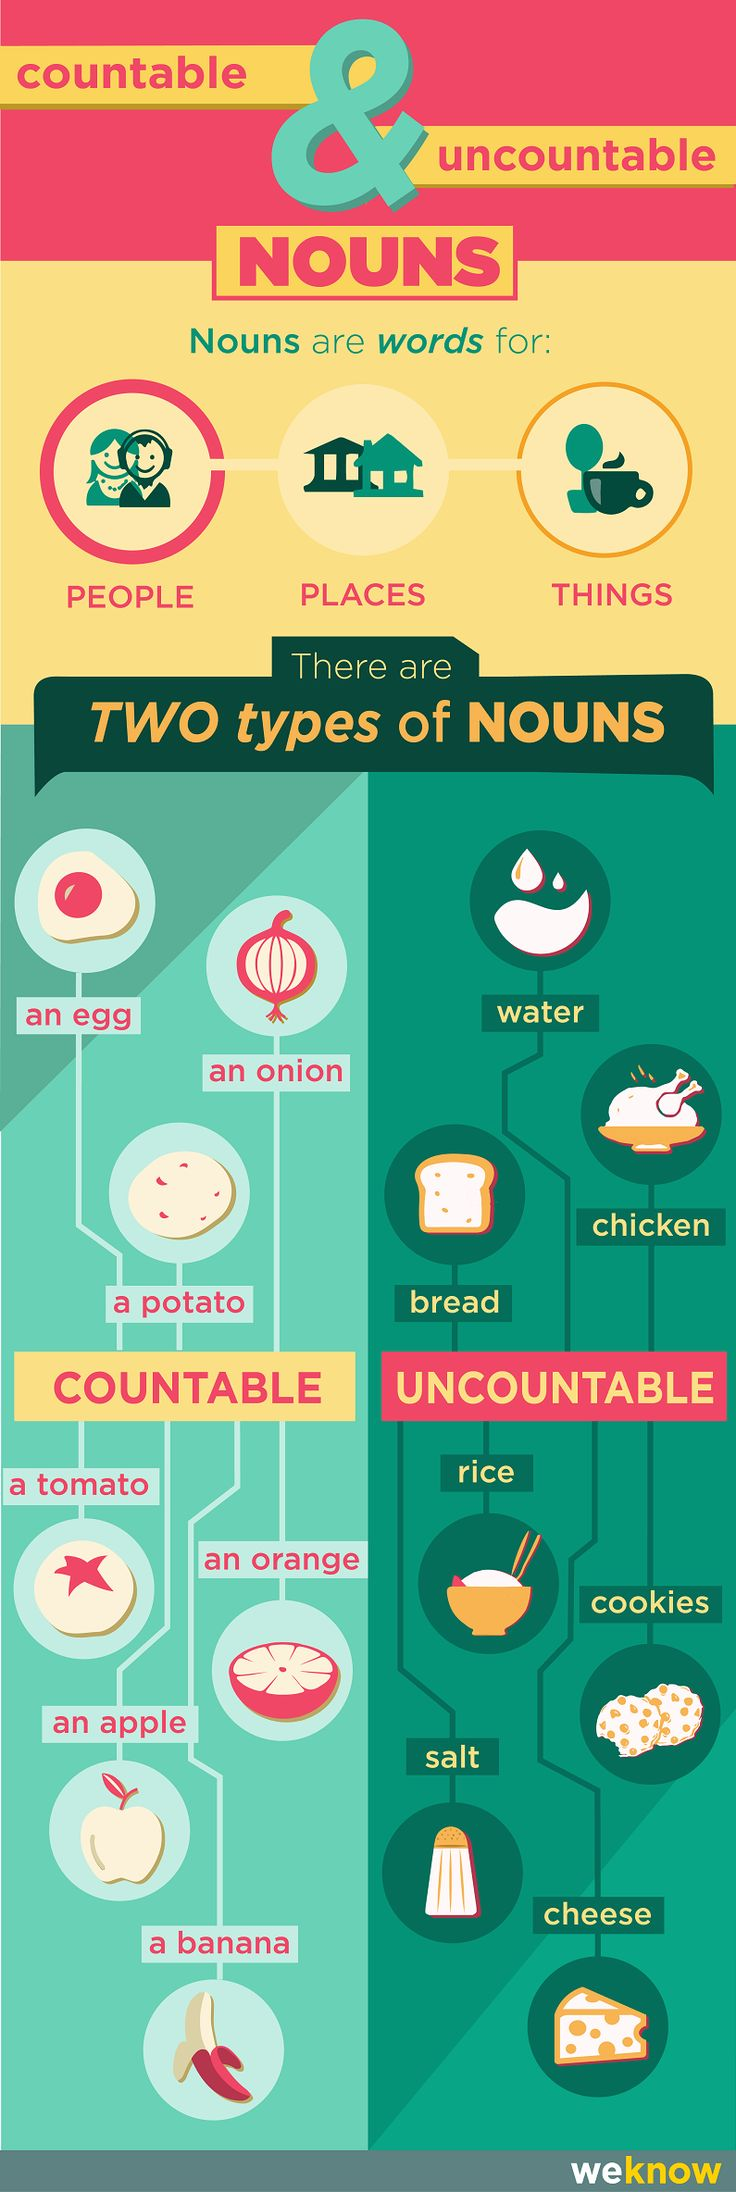 countable and uncountable food nouns -         Repinned by Chesapeake College Adult Ed. We offer free classes on the Eastern Shore of MD to help you earn your GED - H.S. Diploma or Learn English (ESL) .   For GED classes contact Danielle Thomas 410-829-6043 dthomas@chesapeake.edu  For ESL classes contact Karen Luceti - 410-443-1163  Kluceti@chesapeake.edu .  www.chesapeake.edu